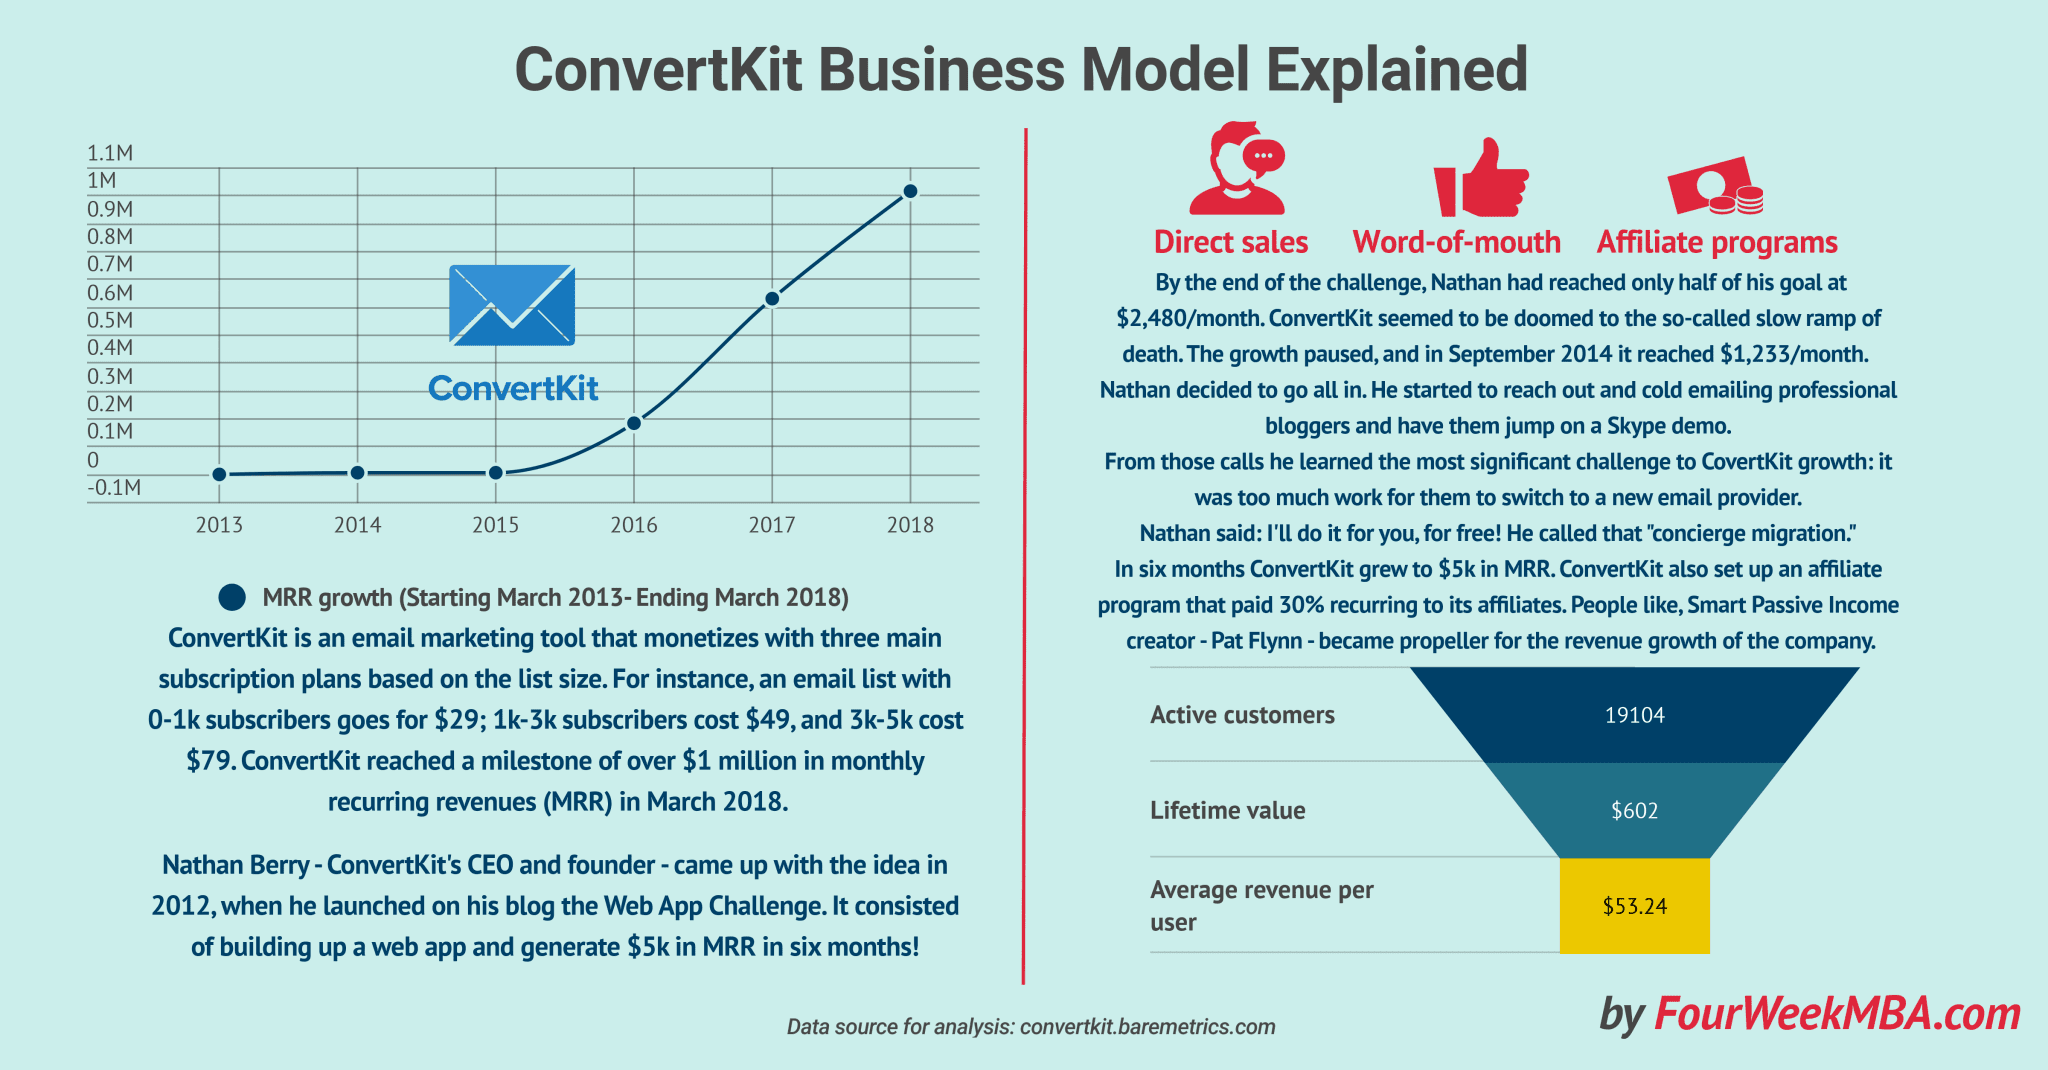 covertkit-business-model